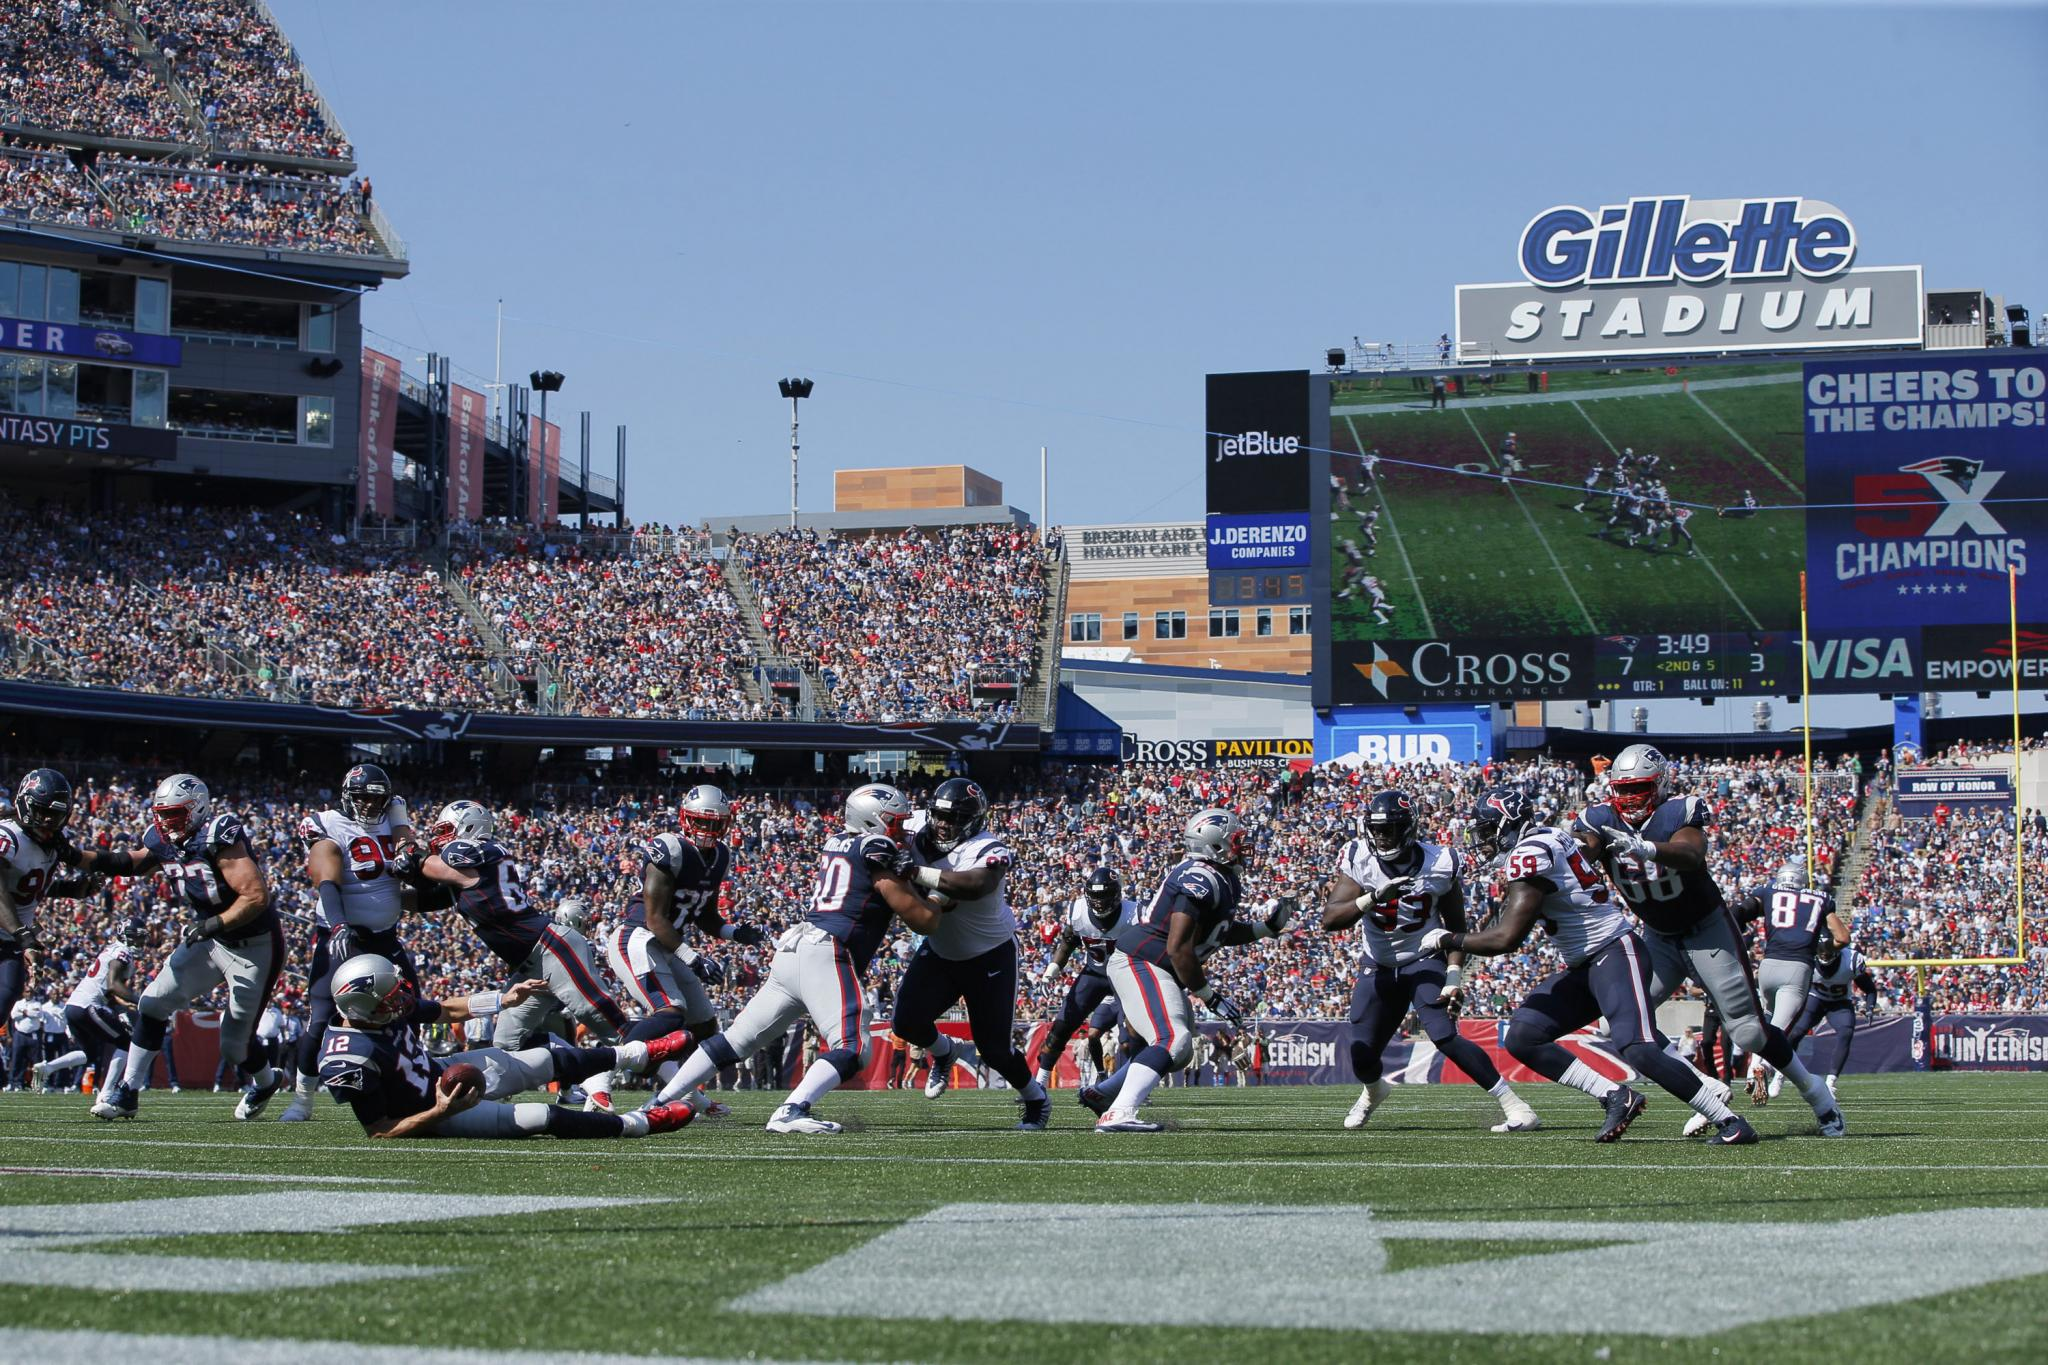 Gillettestadium_092617_butler_david_usatoday